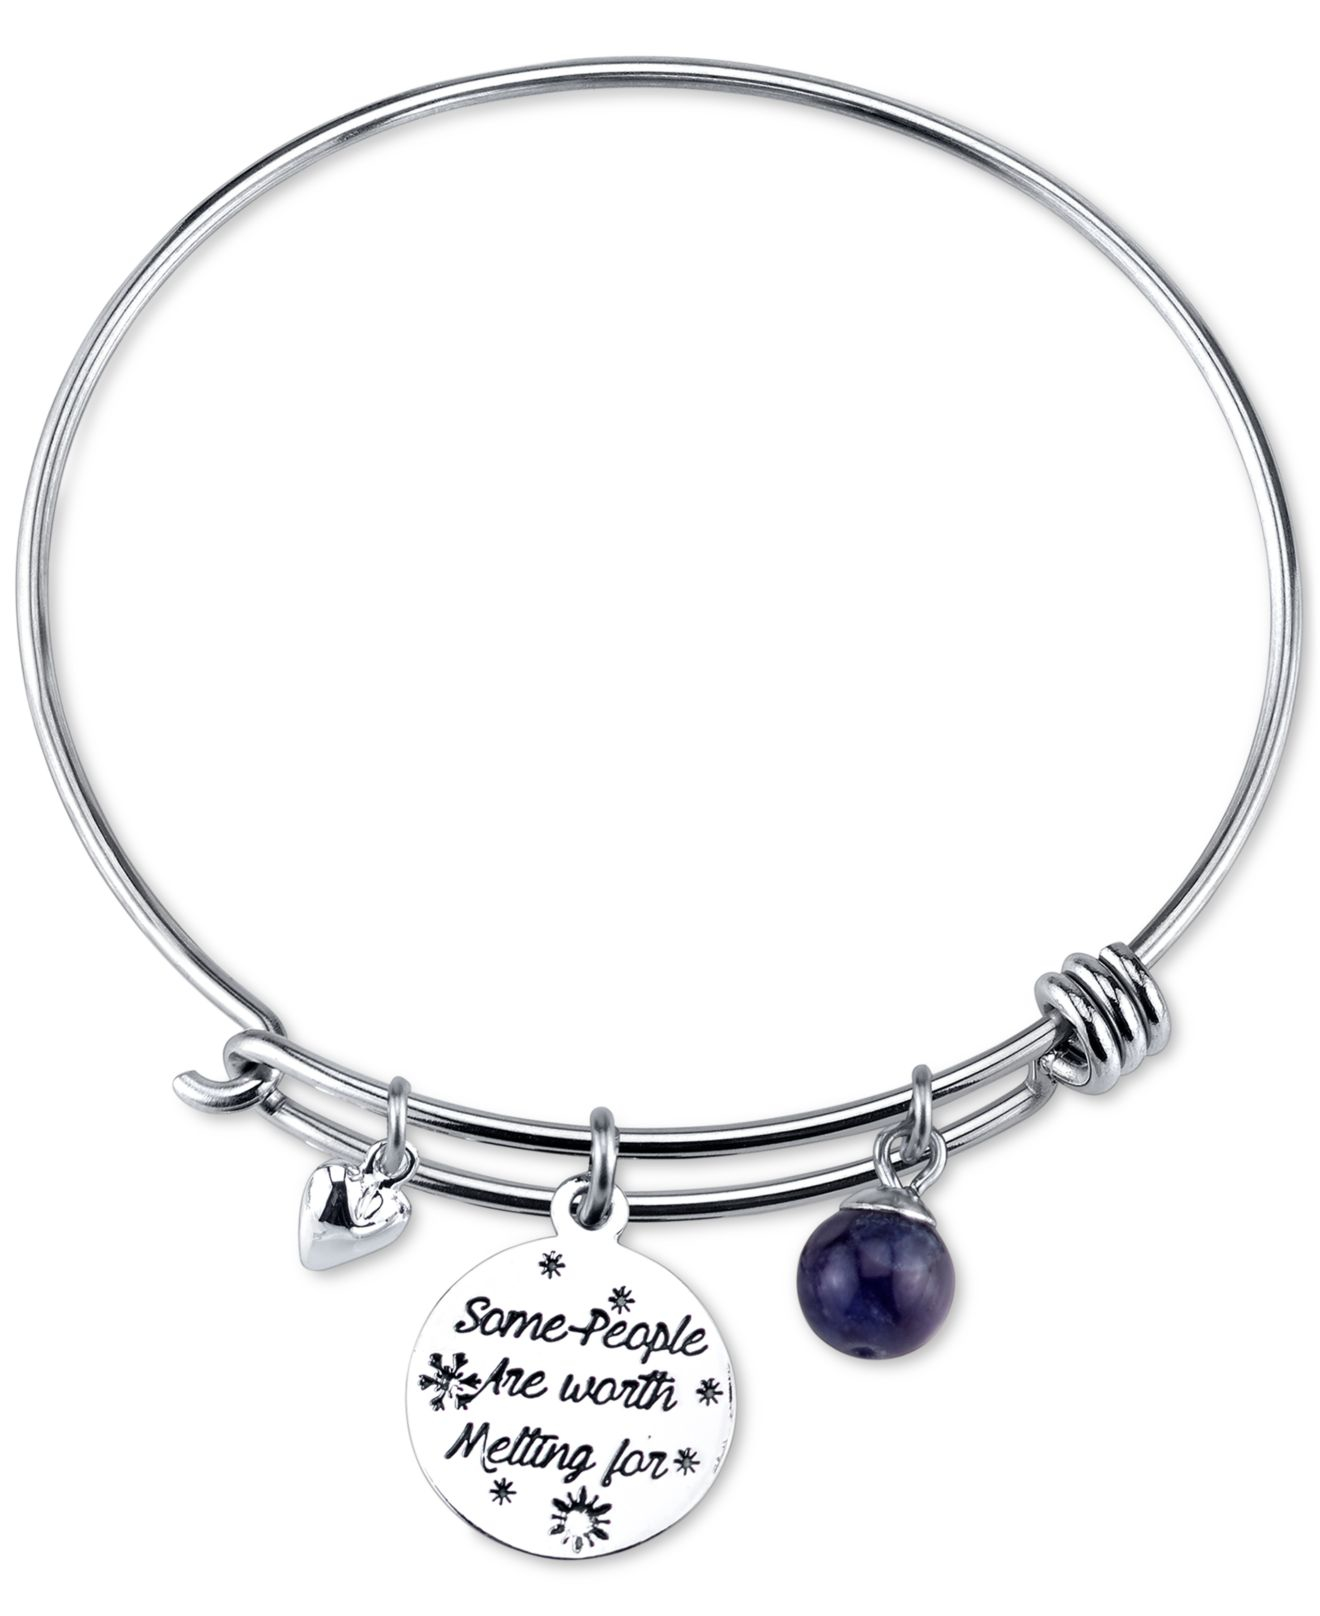 Disney Frozen Olaf Charm Bangle Bracelet In Stainless Steel With